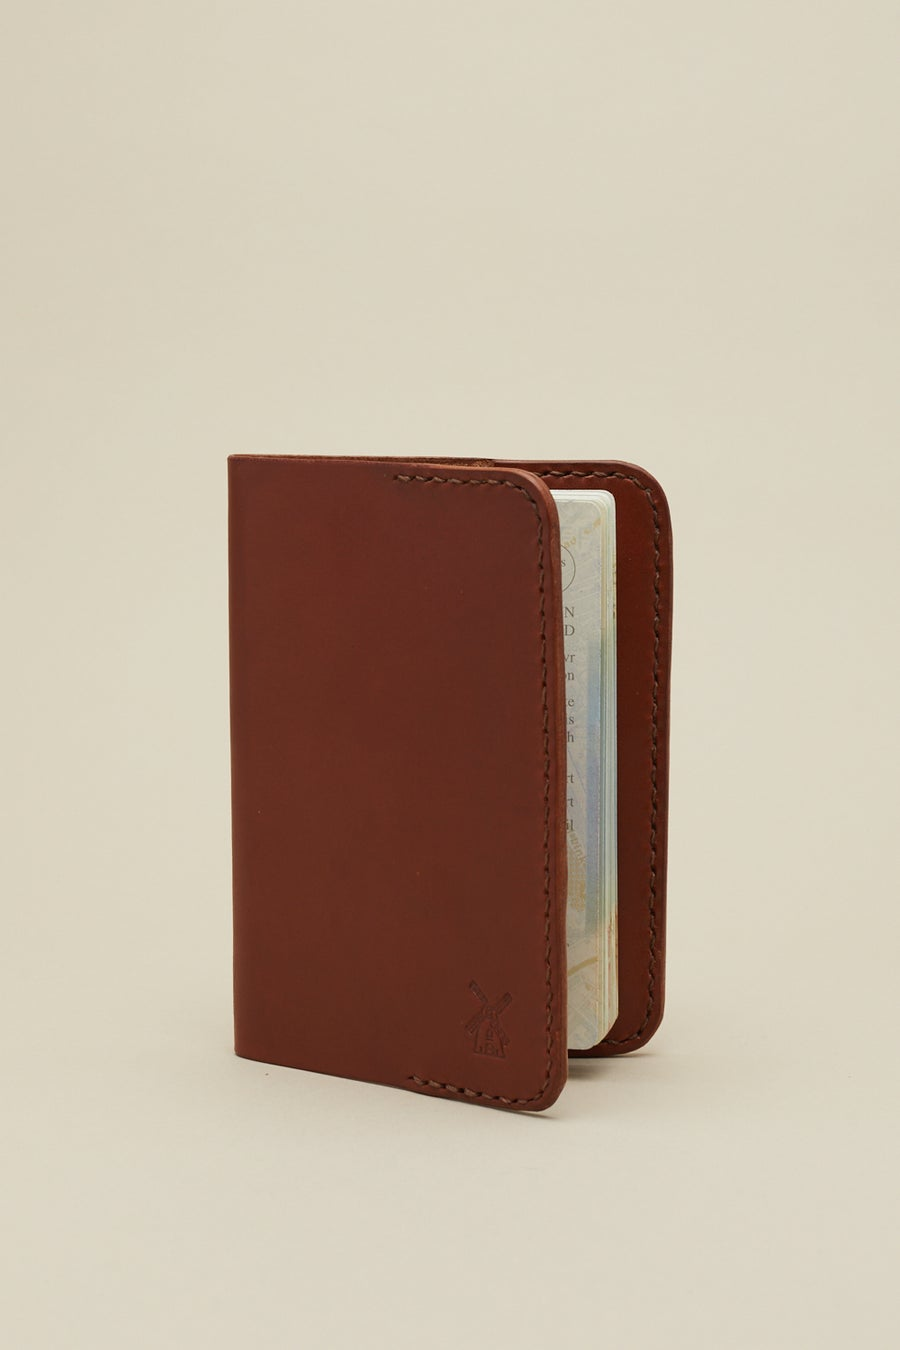 Image of Passport Case in Mahogany